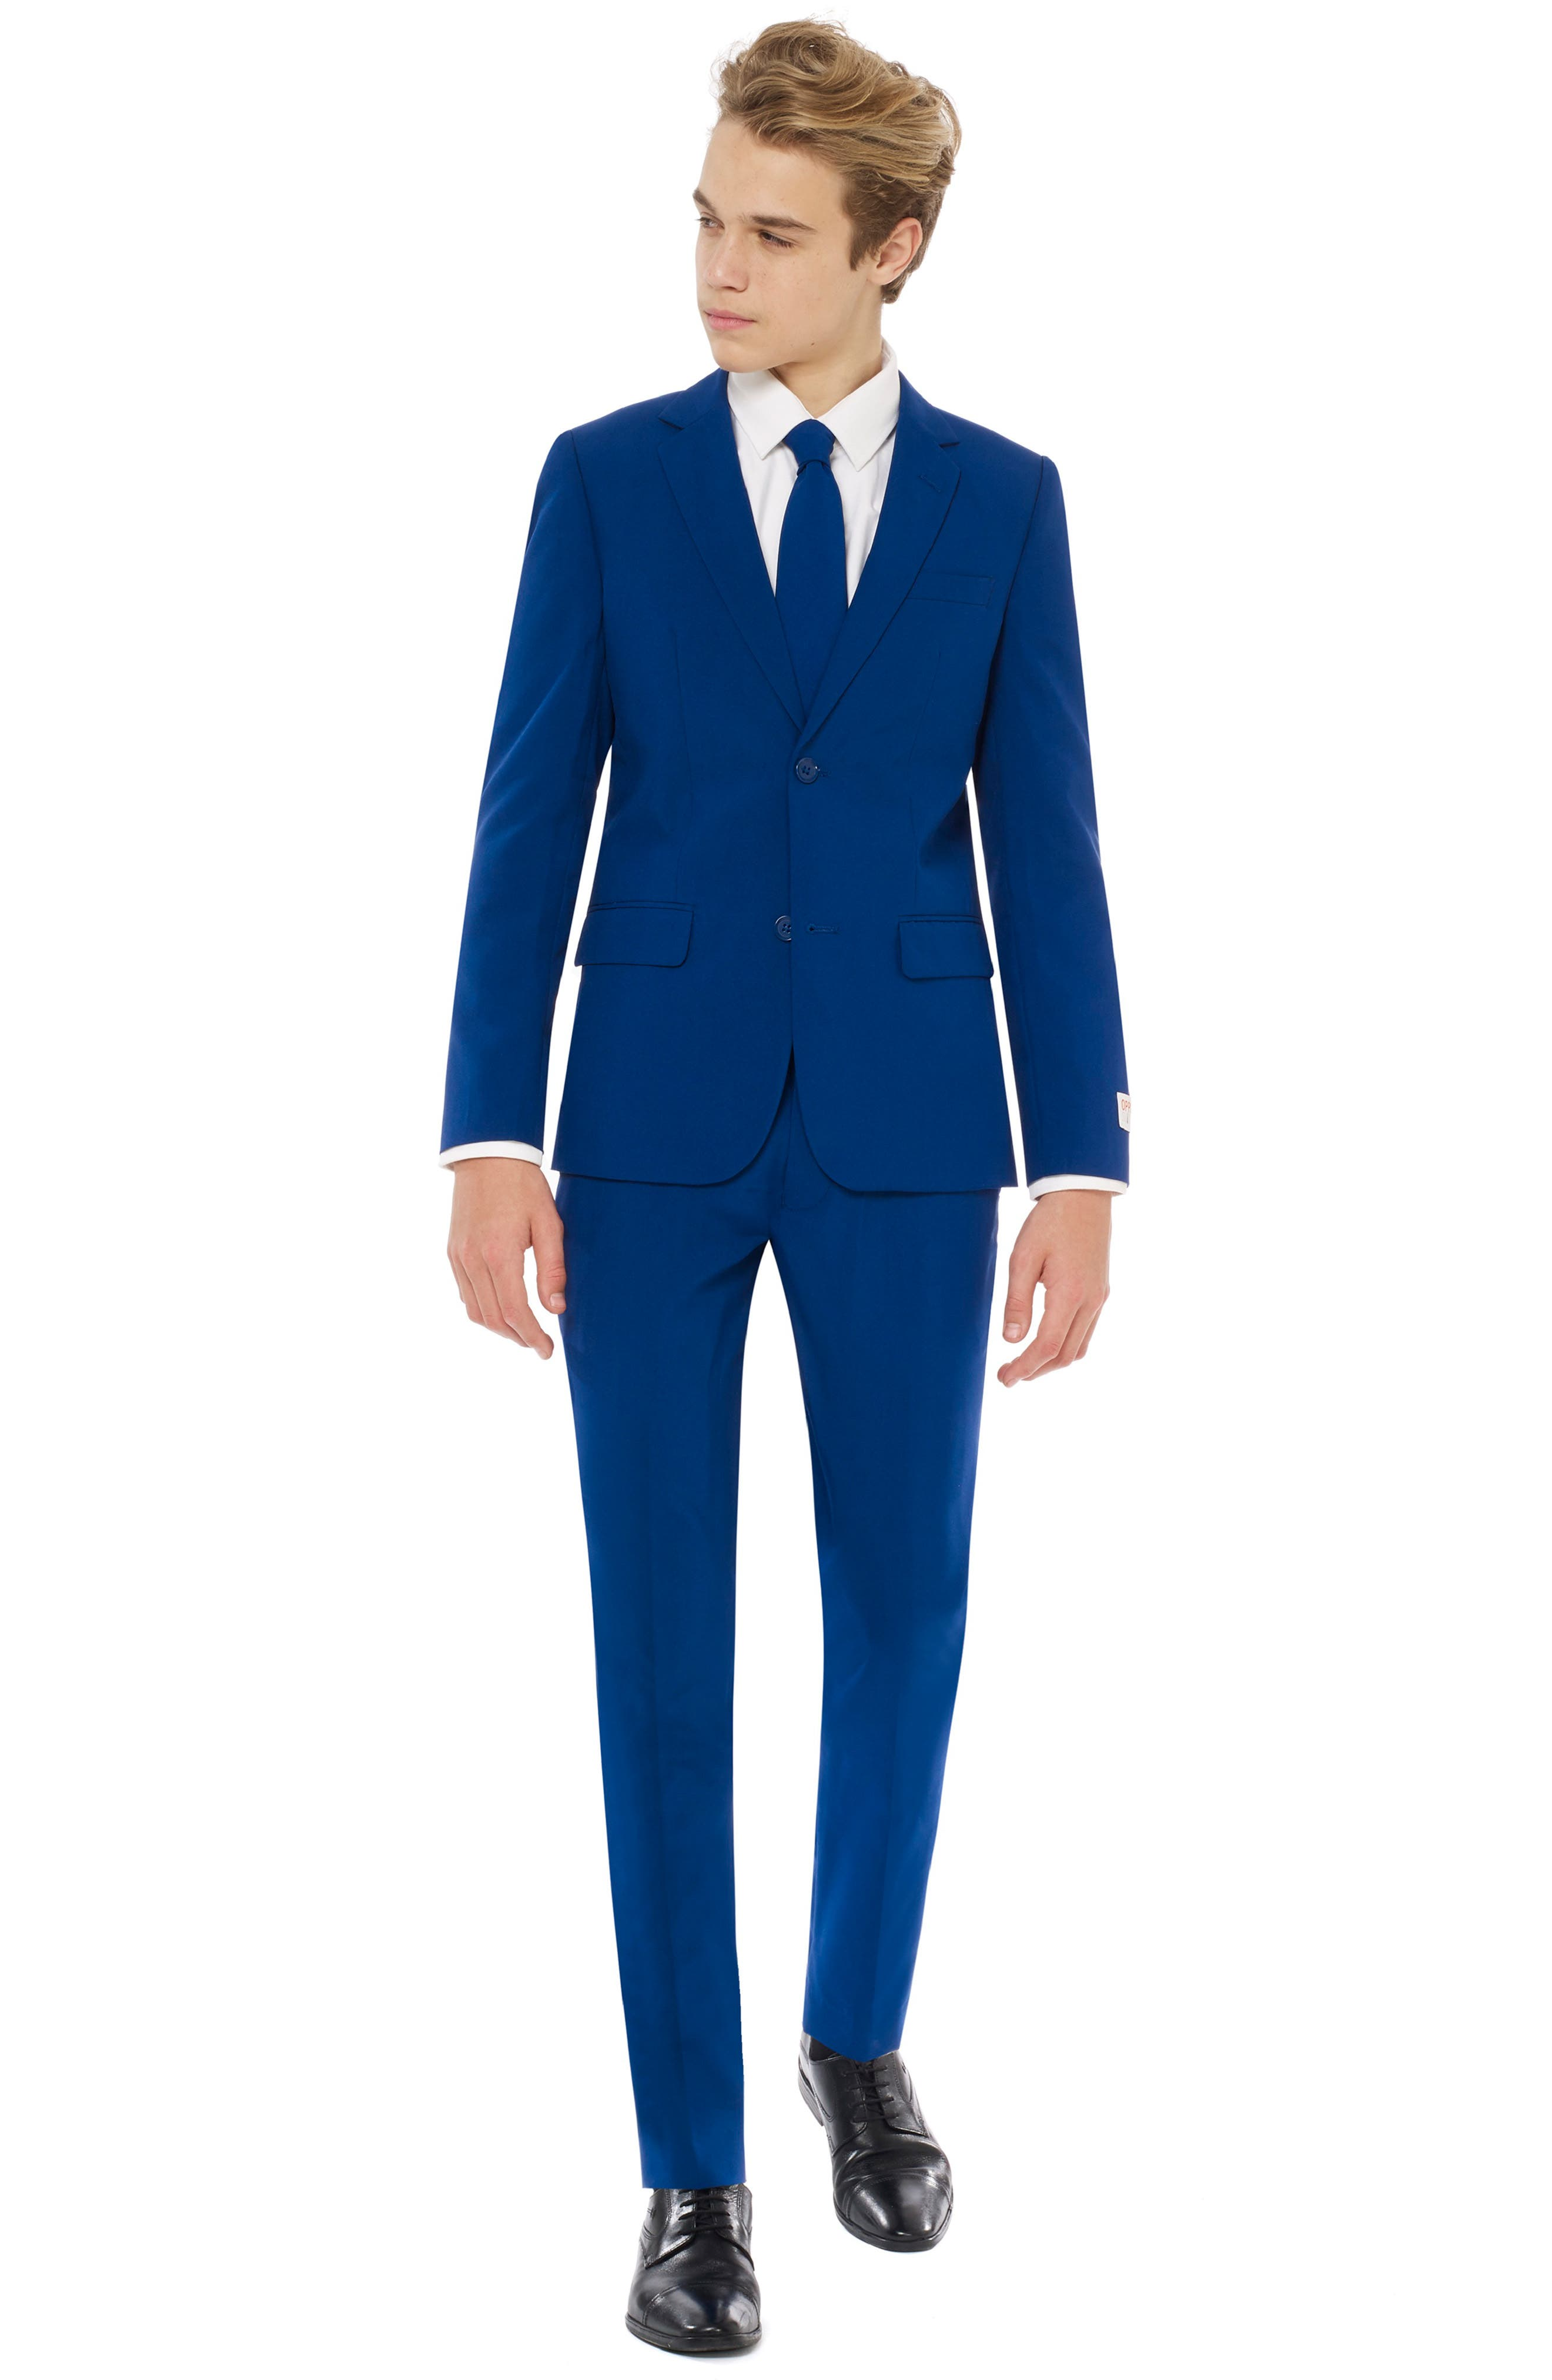 Boys Opposuits Navy Royale TwoPiece Suit With Tie